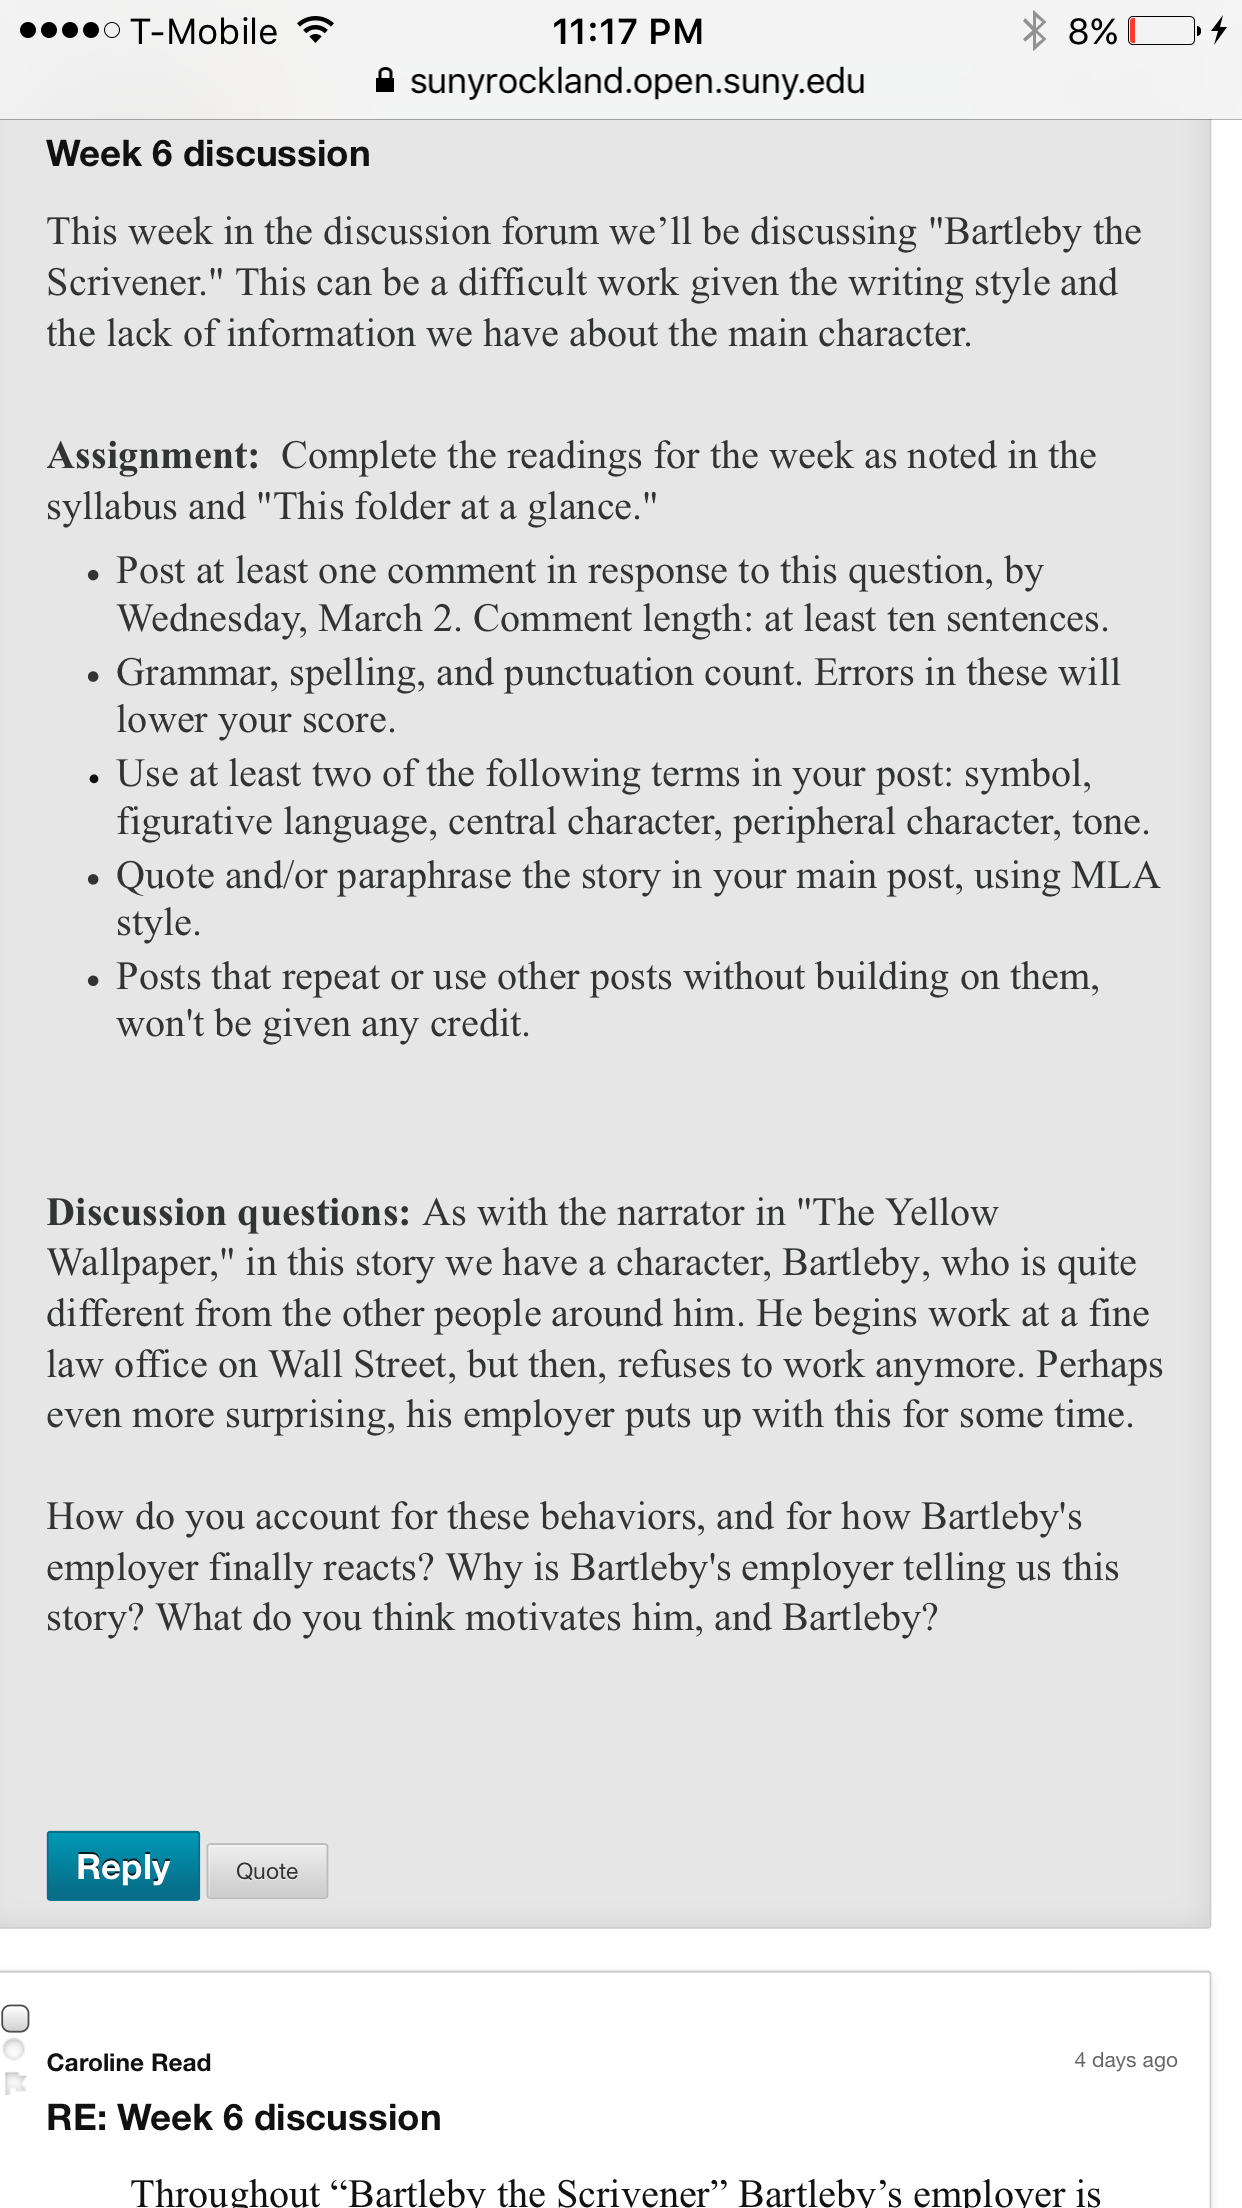 bartleby the scrivener essay questions paralegal resume objective media%2ffe5%2ffe55ccc6 d374 4d70 aef7 bffc344288d0%2fphp8zallr computer science archive 2016 29 page 8 bartleby the scrivener essay questions